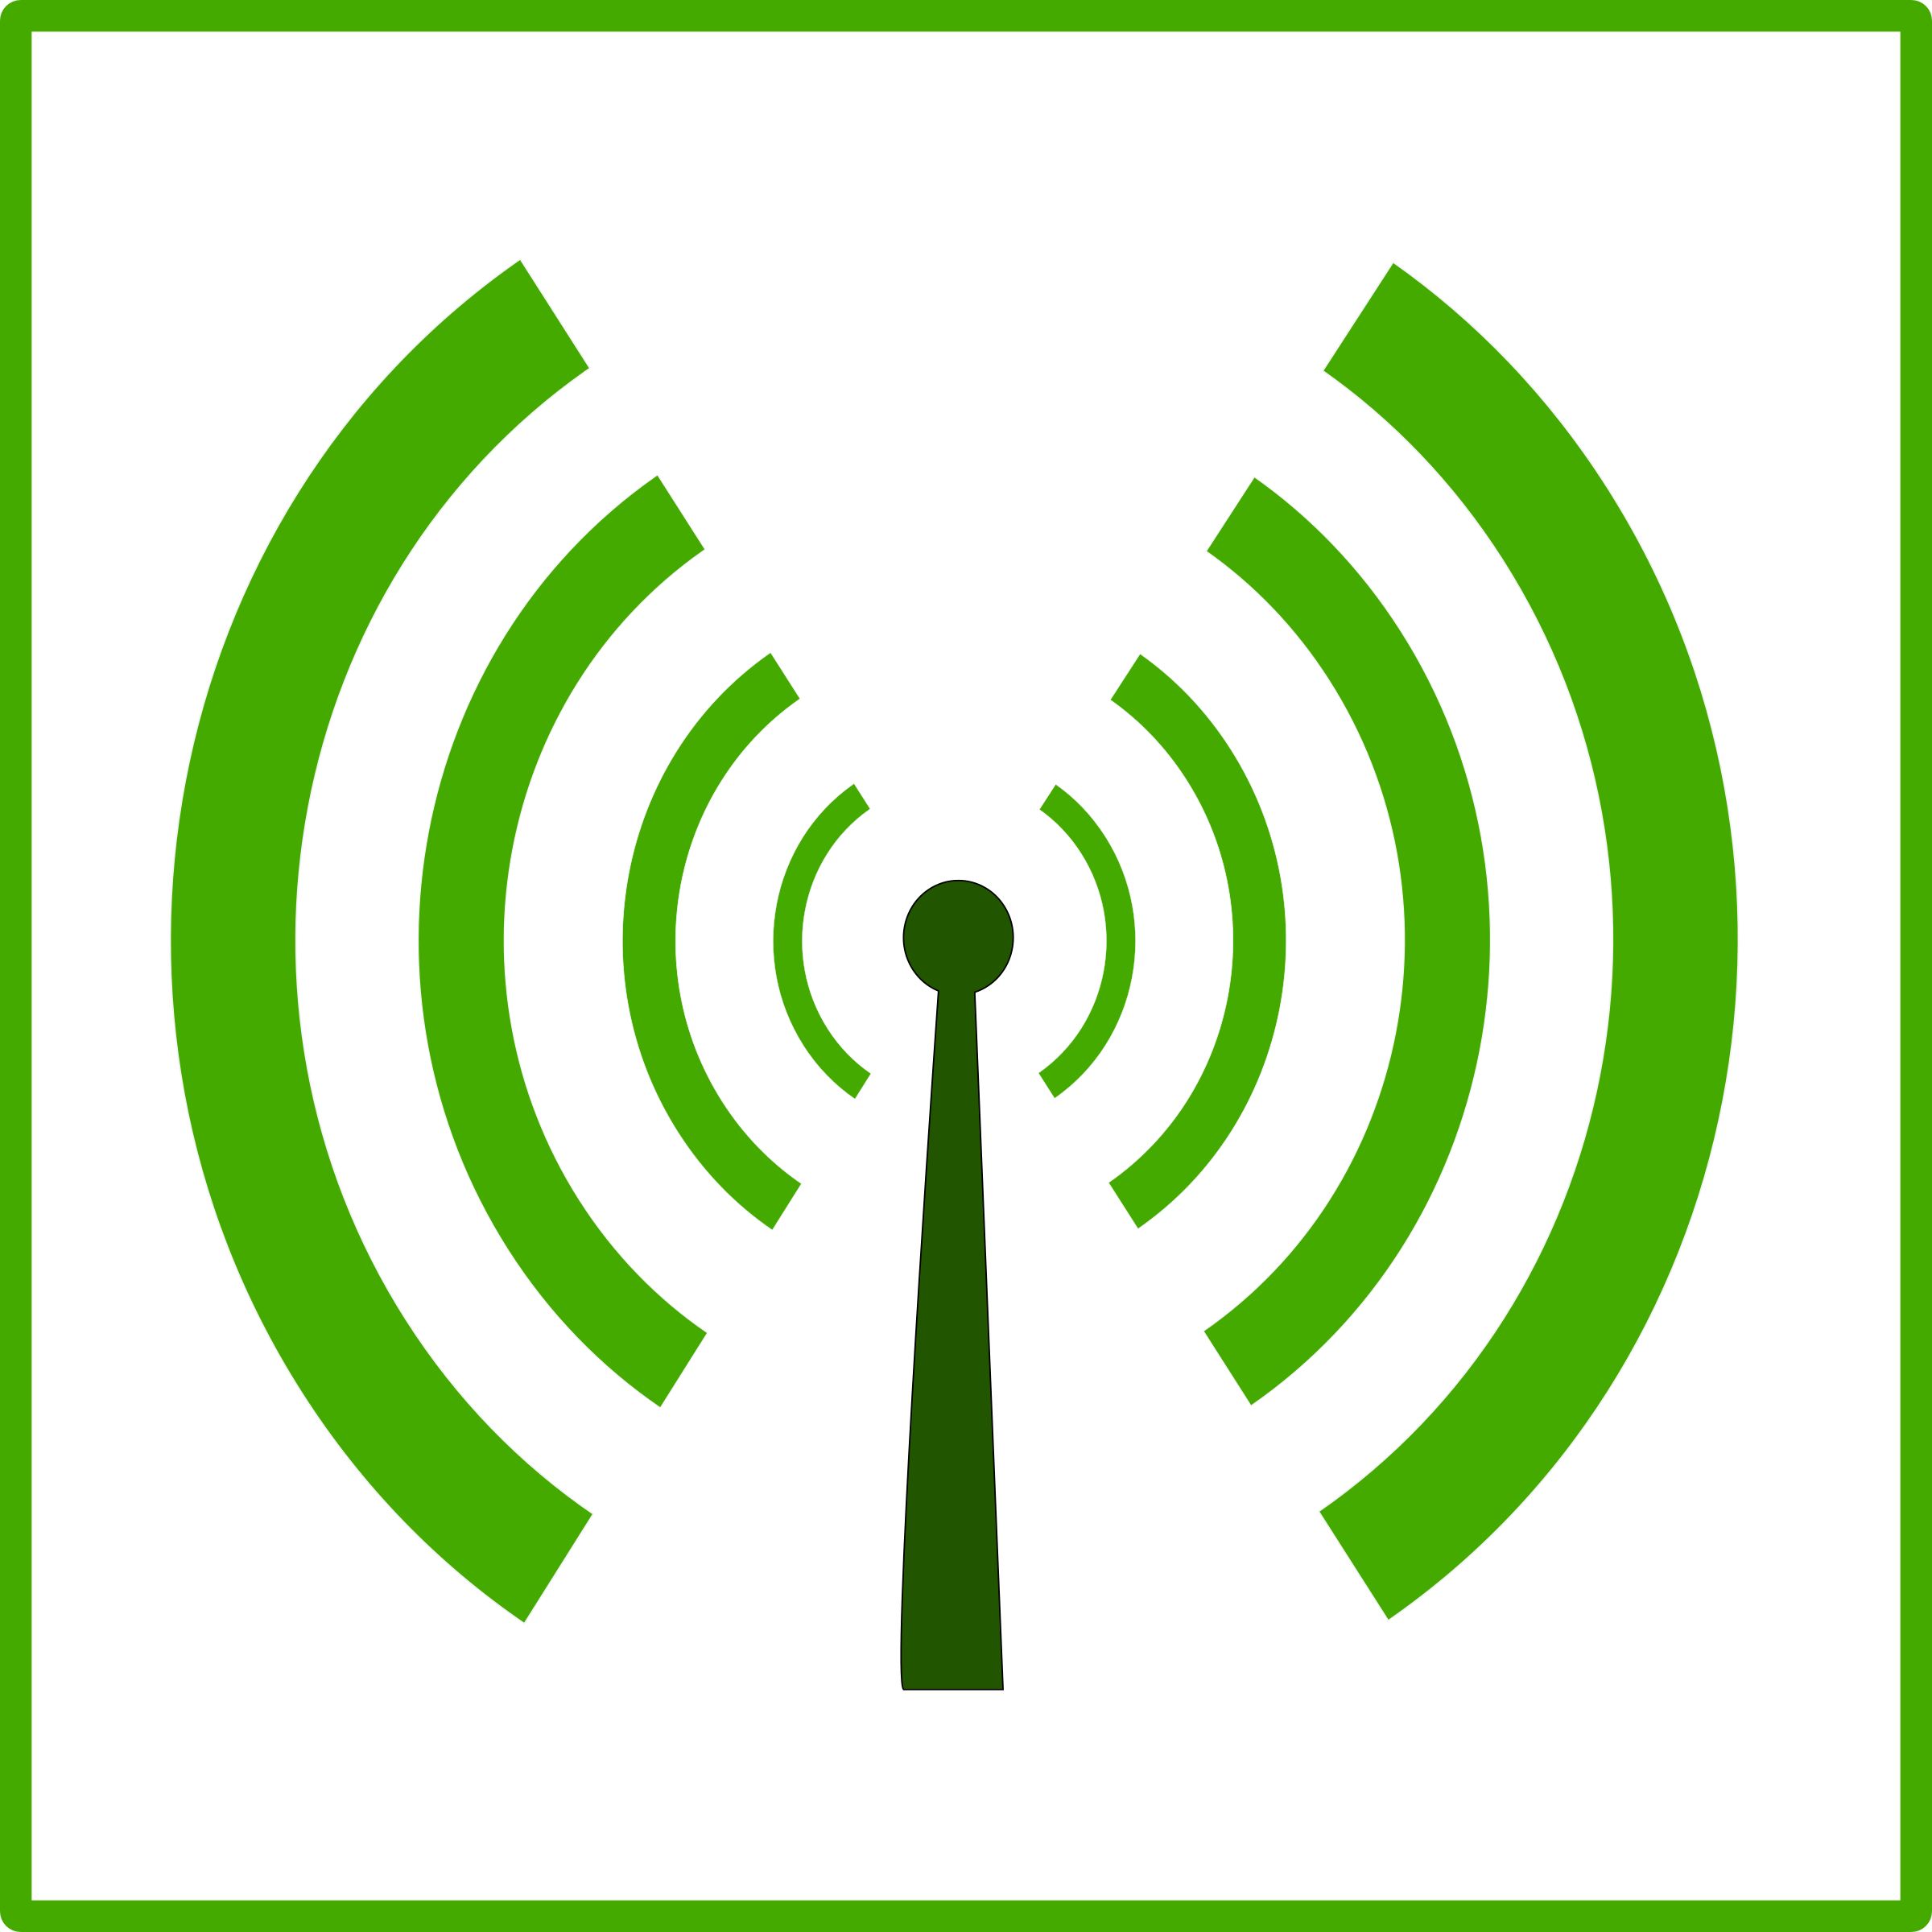 eco green wifi pollution icon by dominiquechappard